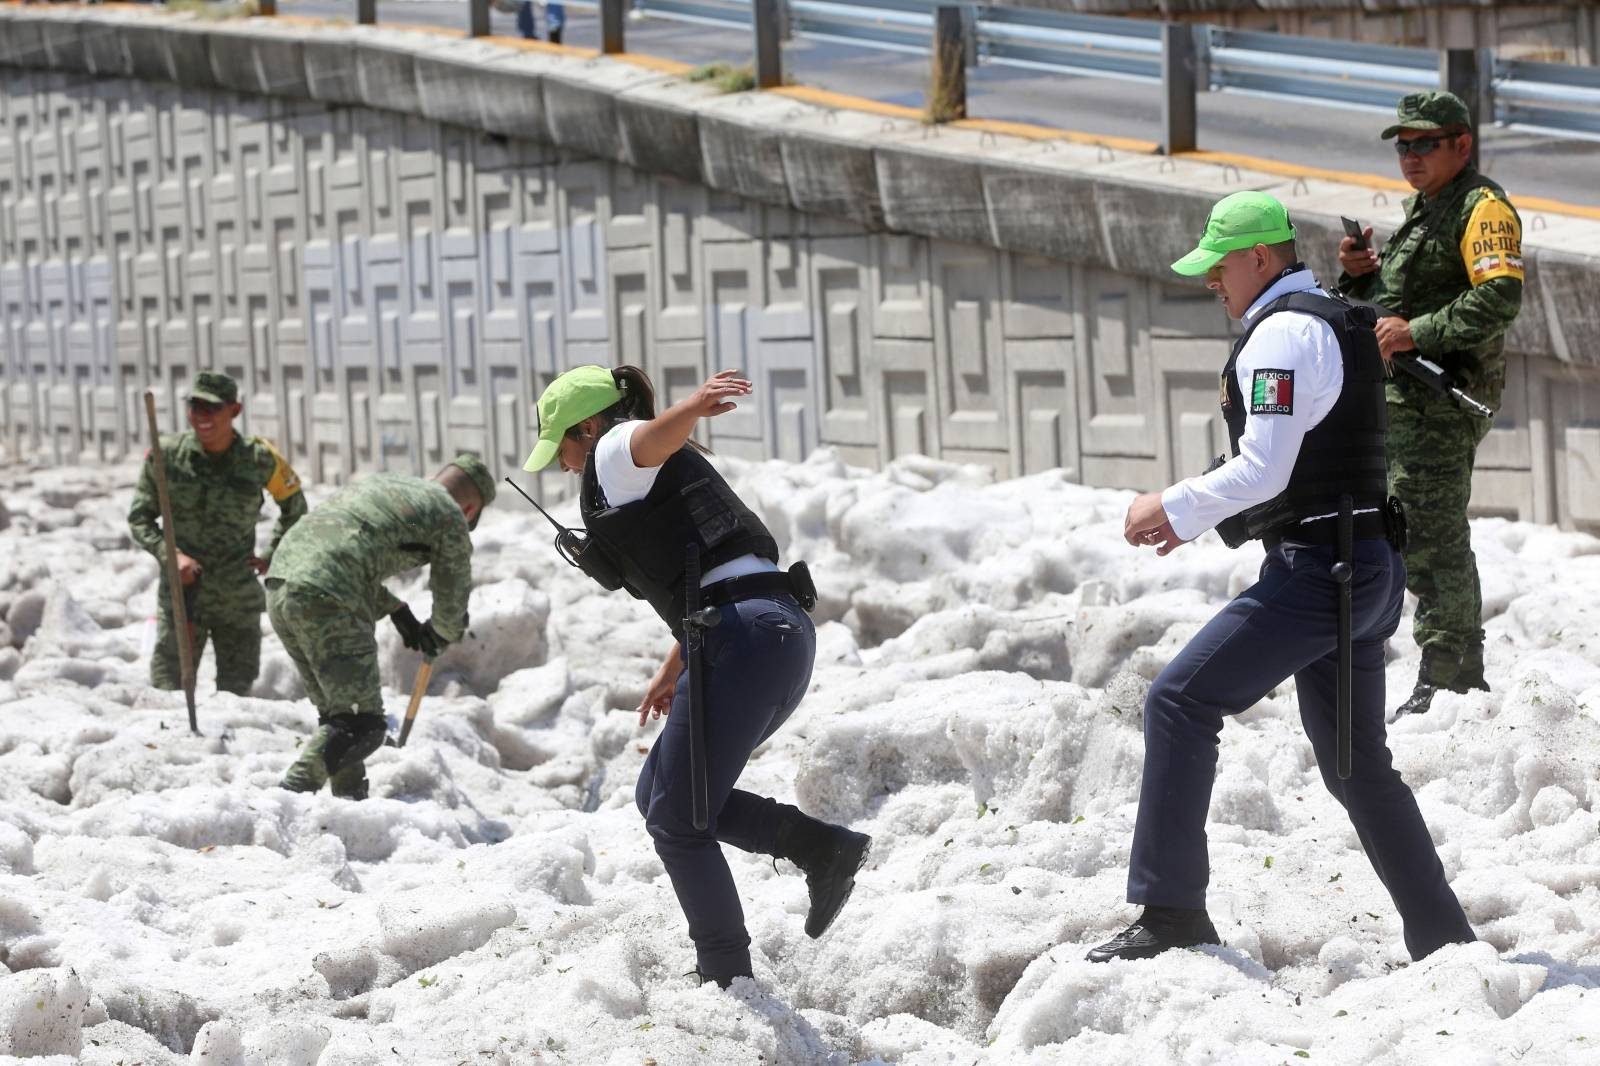 Security forces and soldiers try to clear away ice after a heavy storm of rain and hail which affected some areas of the city in Guadalajara